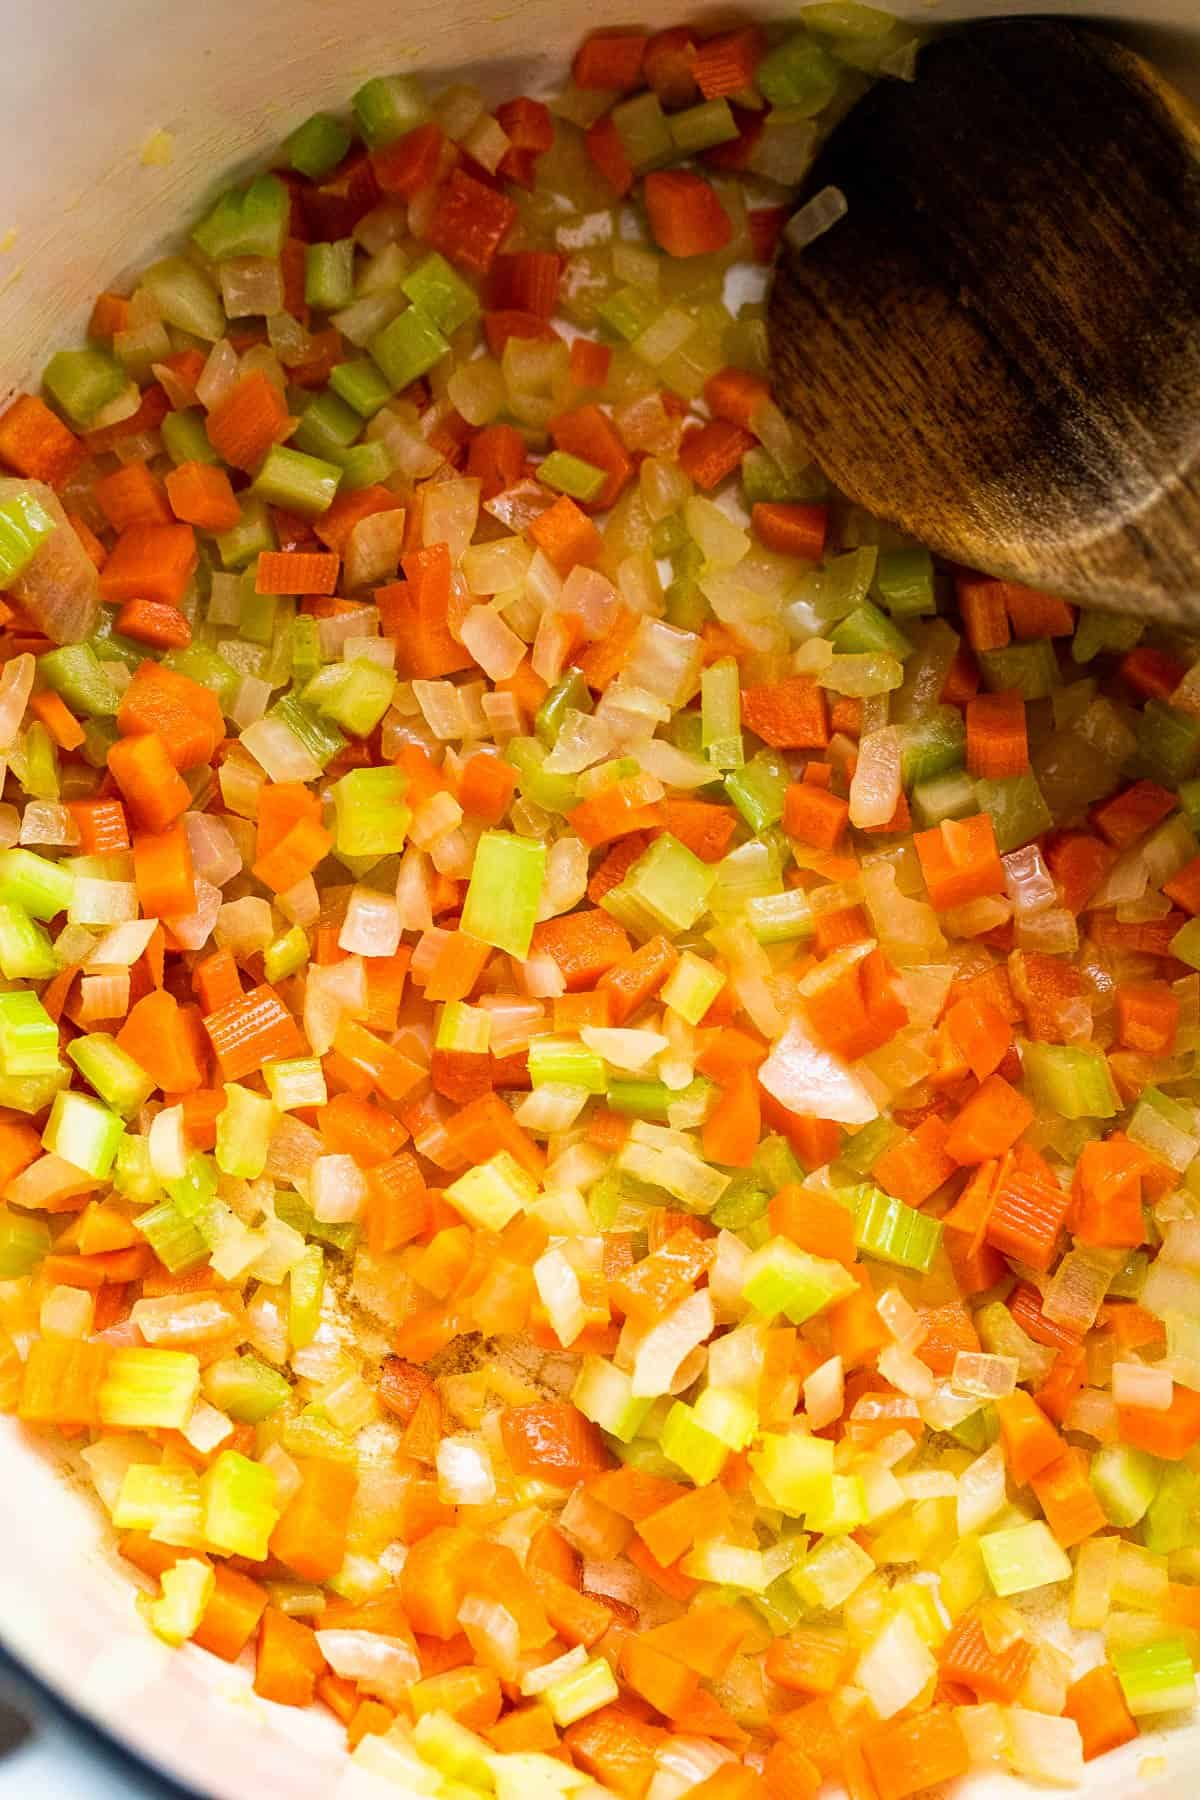 frying carrots and celery in a dutch oven